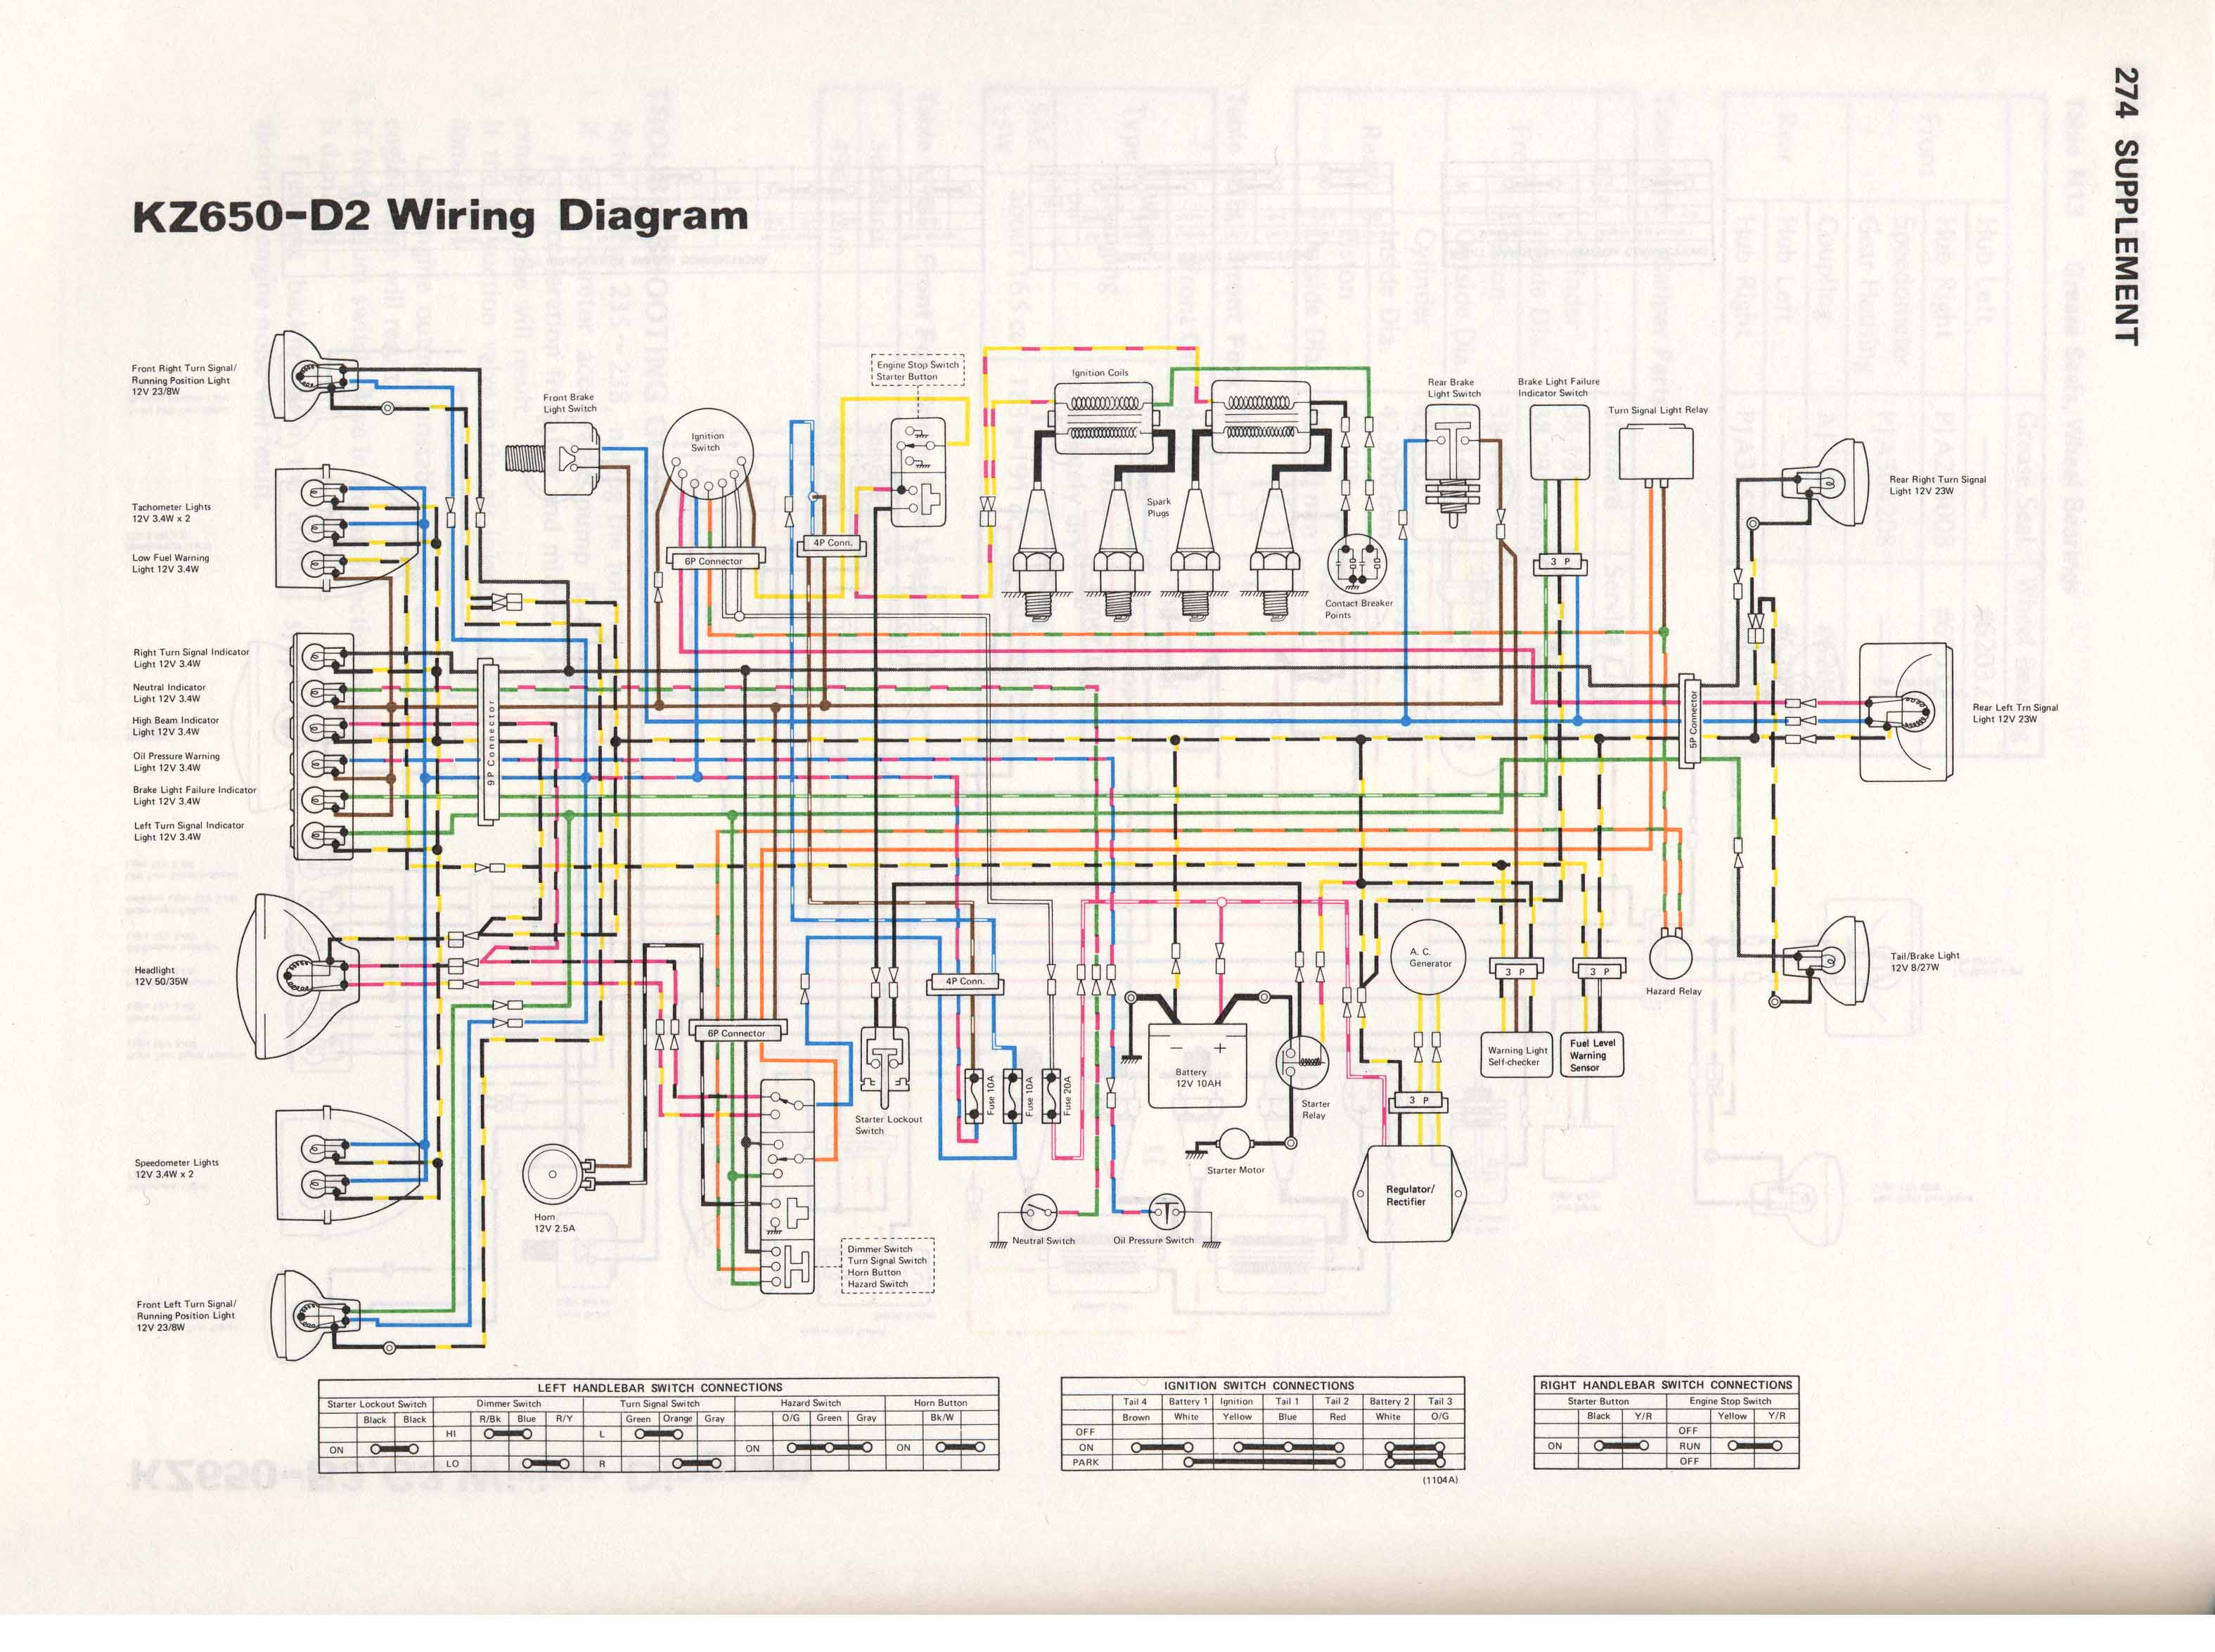 1989 ford f 250 fuel system wiring diagram with C7 Corvette Fuse Box Diagram on G503 WWII 1942 Ford Jeep Wiring Diagram additionally 1995 Dodge Ram 2500 Ignition Wire Diagrams Wiring Diagrams furthermore 3 0 Dohc V6 Duratec Engine Diagram also 2xx6y 1990 Ford F350 Bypassed Fuel Pump Relay Truck Starts Terminal Dim likewise Ford Mustang Headlight Fog Light Wiring Diagram 94 95.